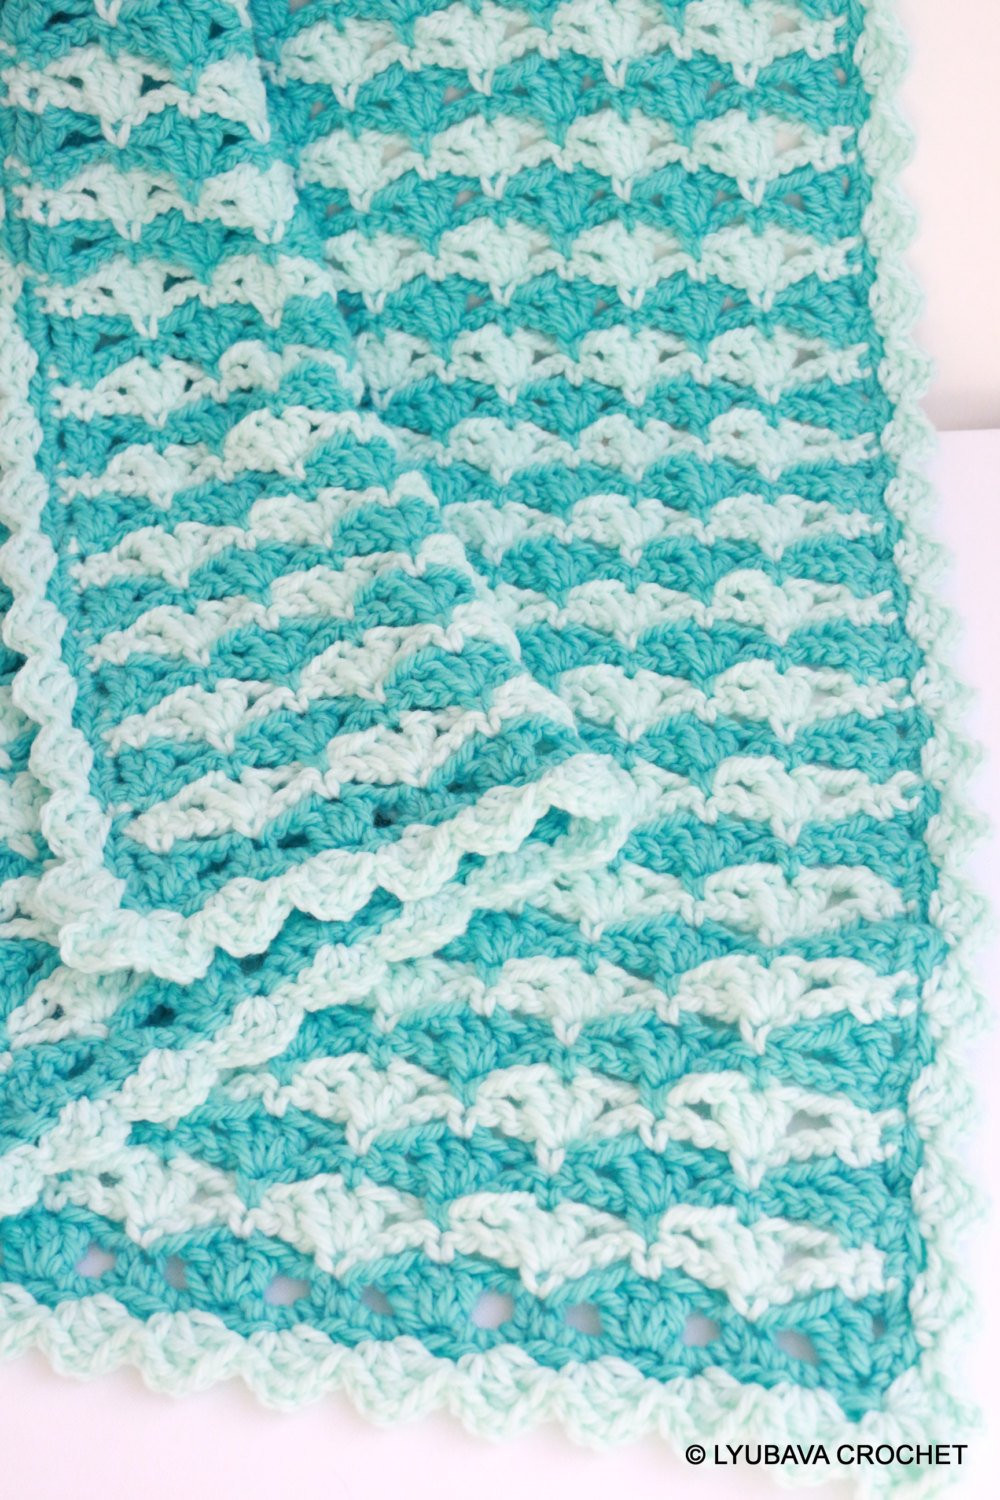 Baby Boy Crochet Blanket Patterns Inspirational Turquoise Baby Blanket Chunky Crochet Blanket for Baby Boy Of Baby Boy Crochet Blanket Patterns Best Of 10 Beautiful Baby Blanket Free Patterns